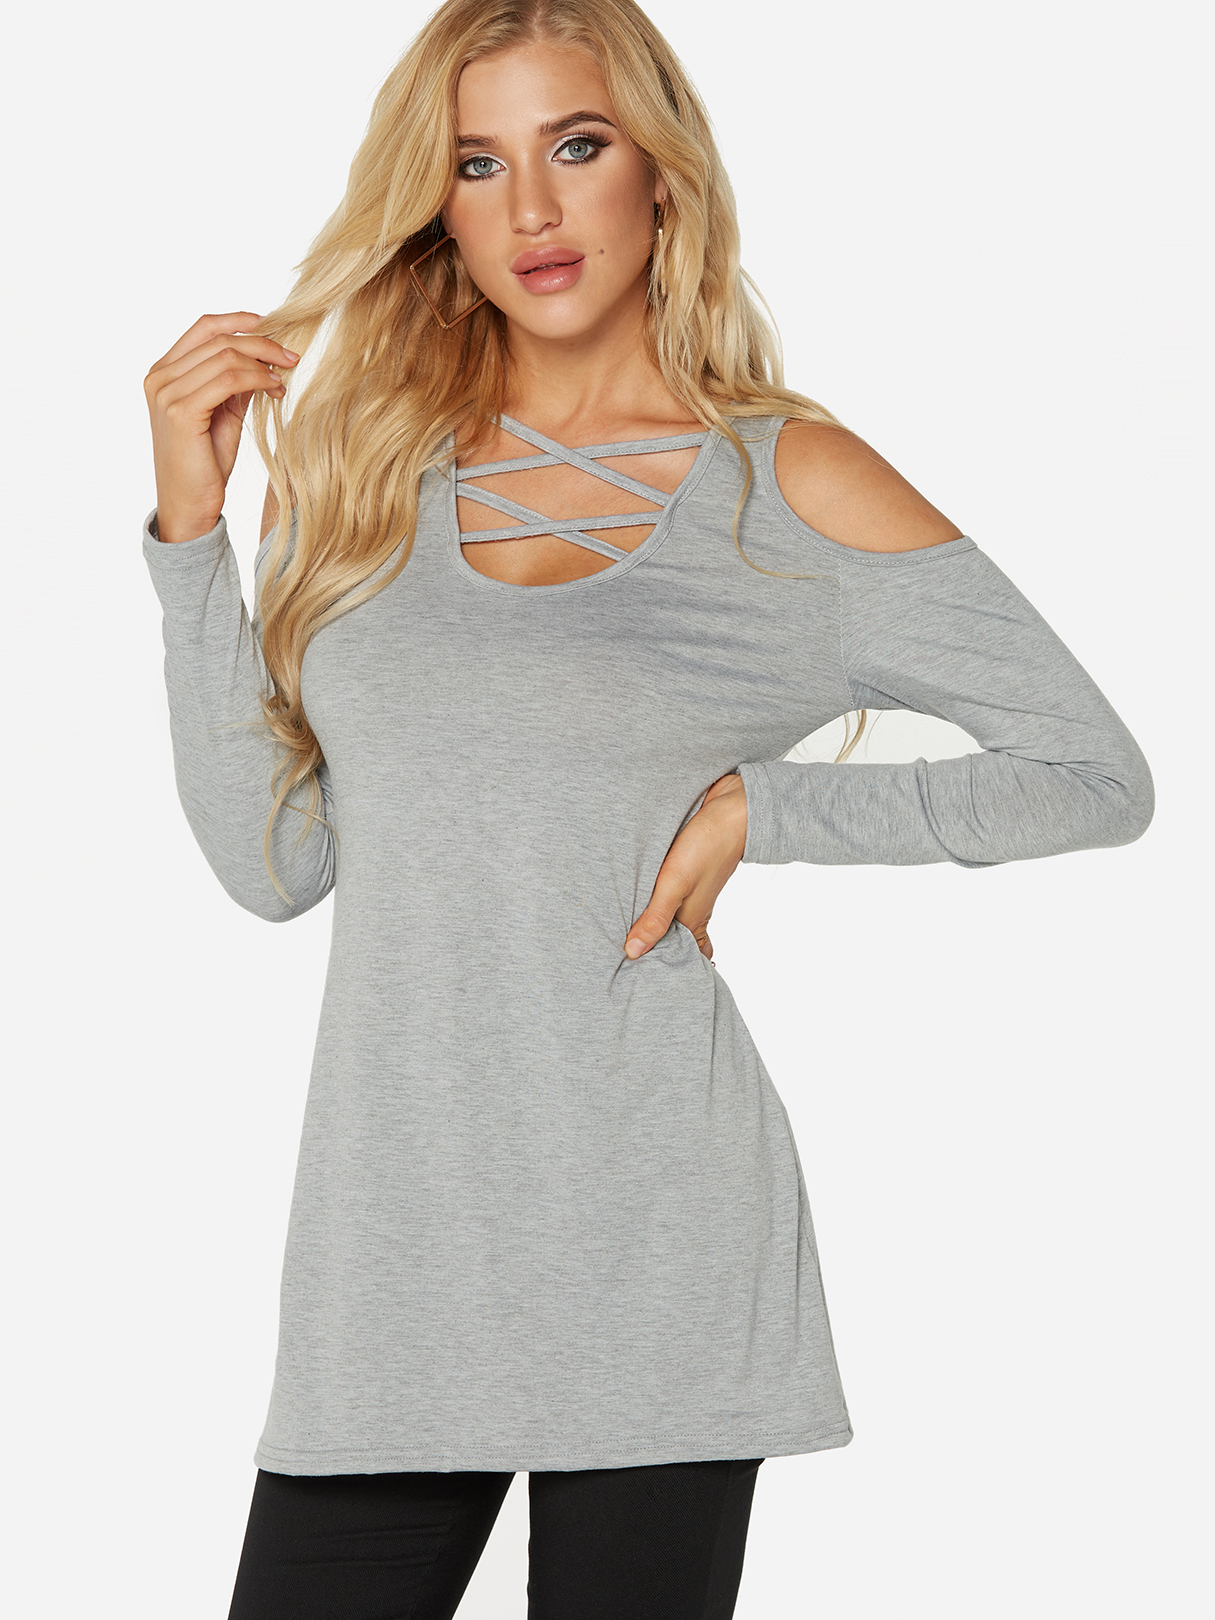 Grey Cut Out Design Cold Shoulder Long Sleeves T-shirts grey sleeveless design chest cut out top